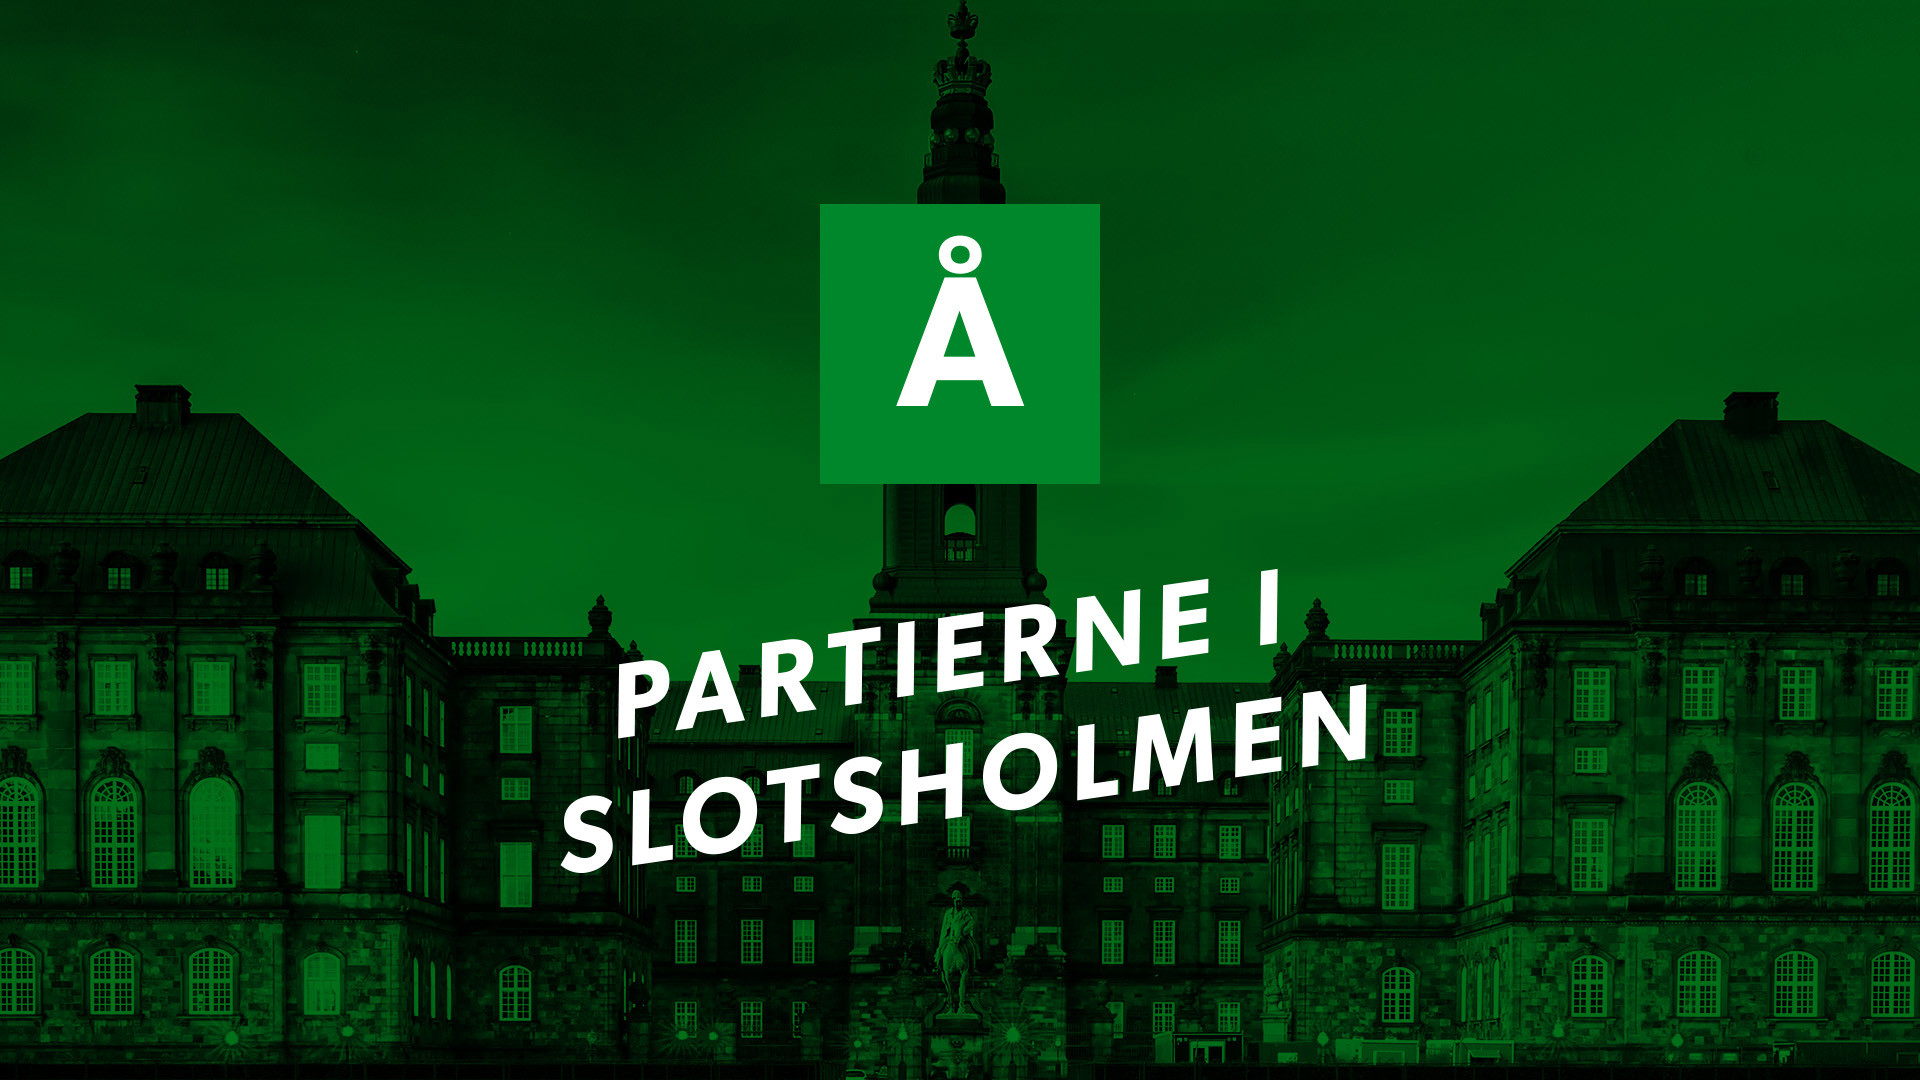 slotsholmen-alternativet.jpg